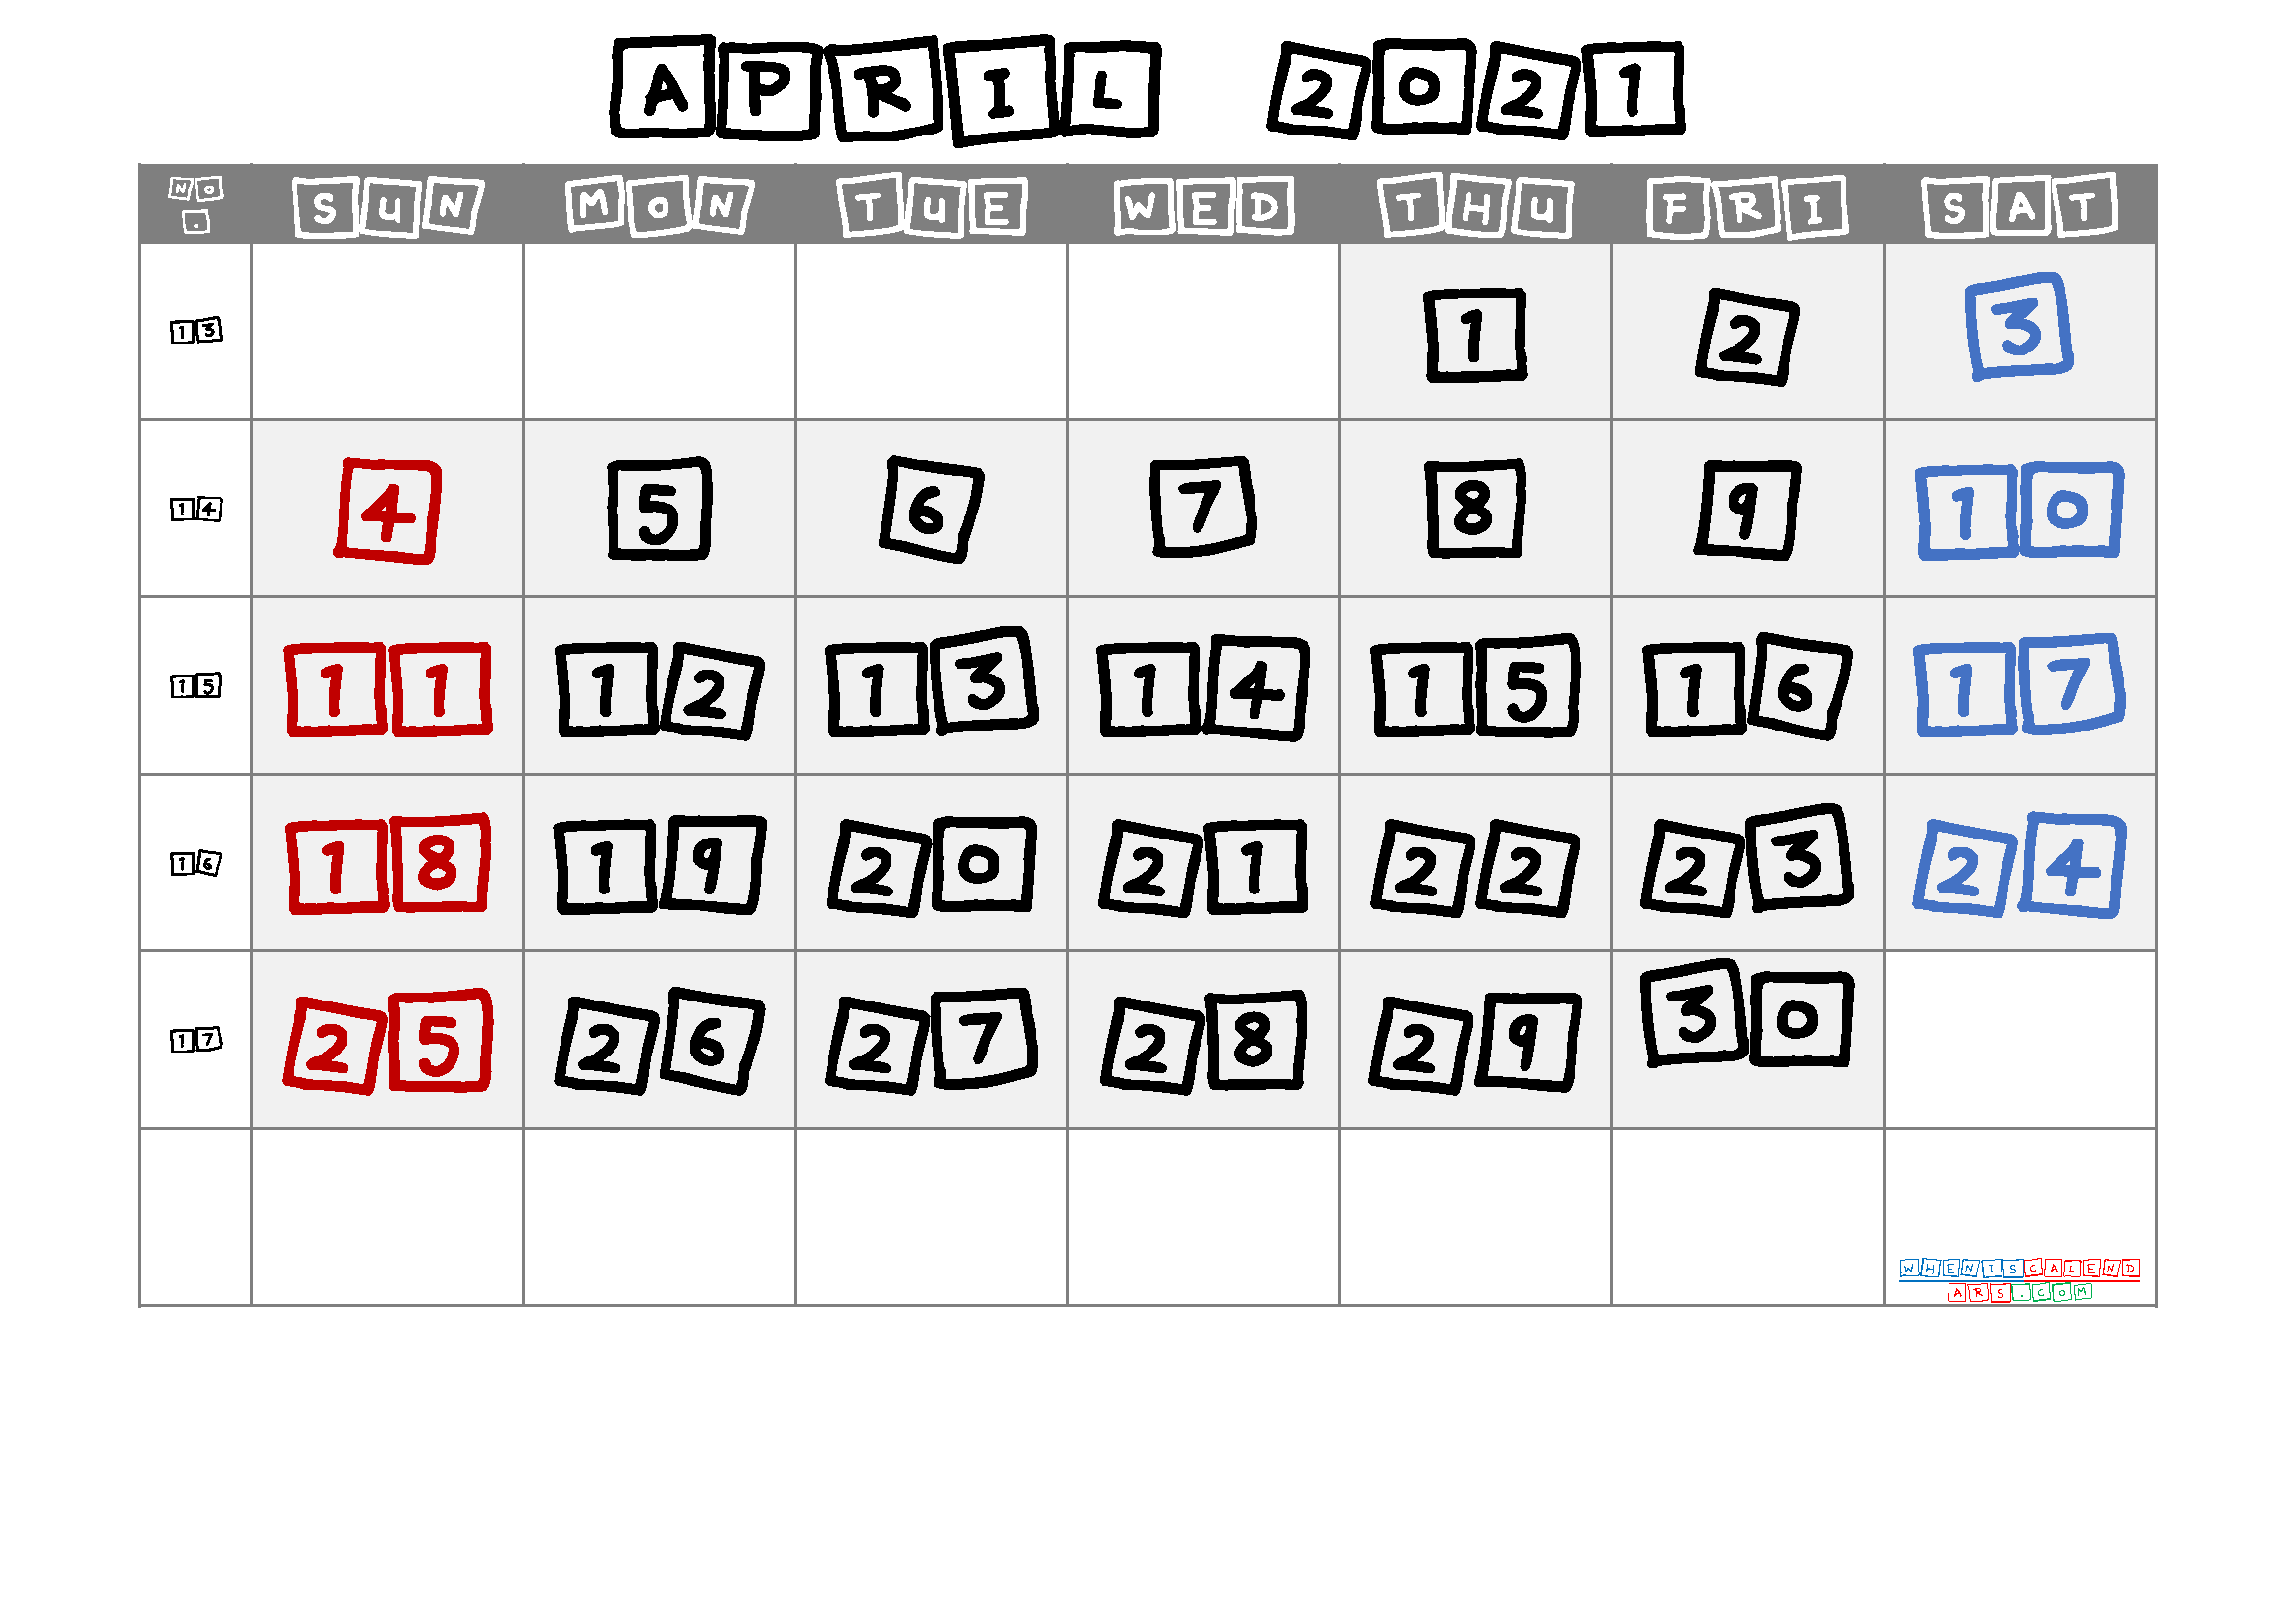 April 2021 Printable Calendar with Week Numbers